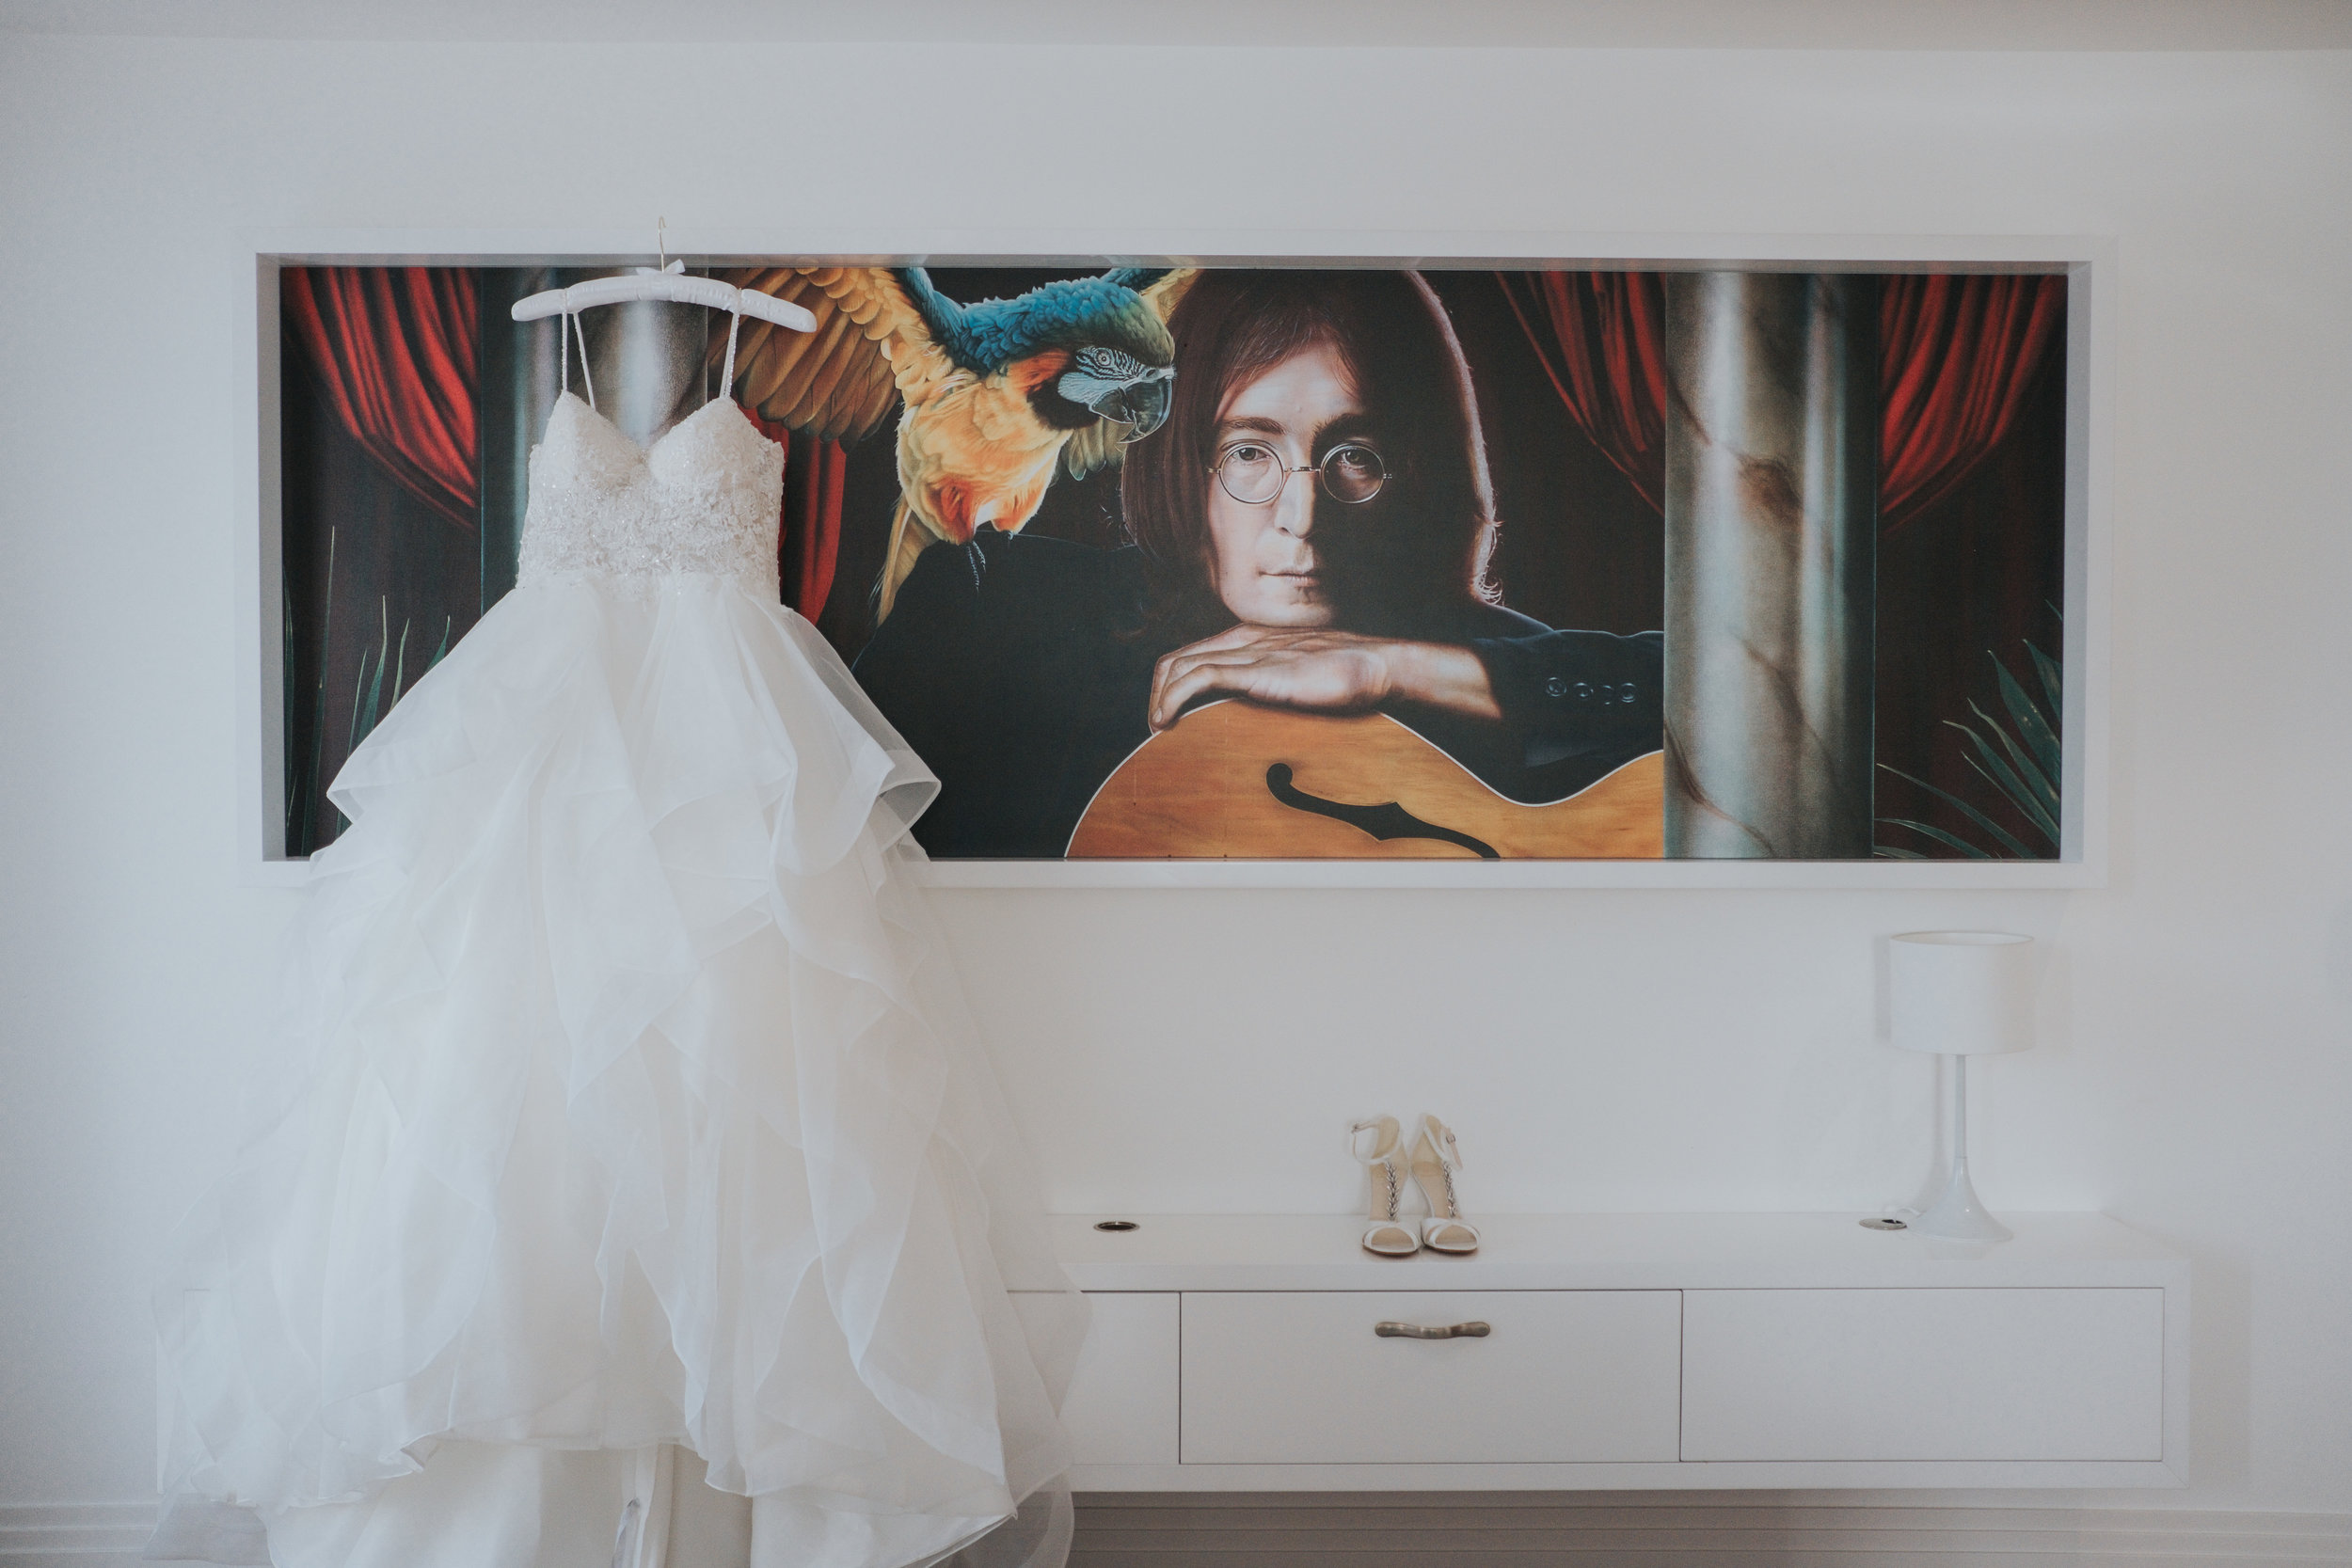 Modern and fashonable city centre wedding at the hard days night hotel in liverpool north west engand (4 of 54).jpg